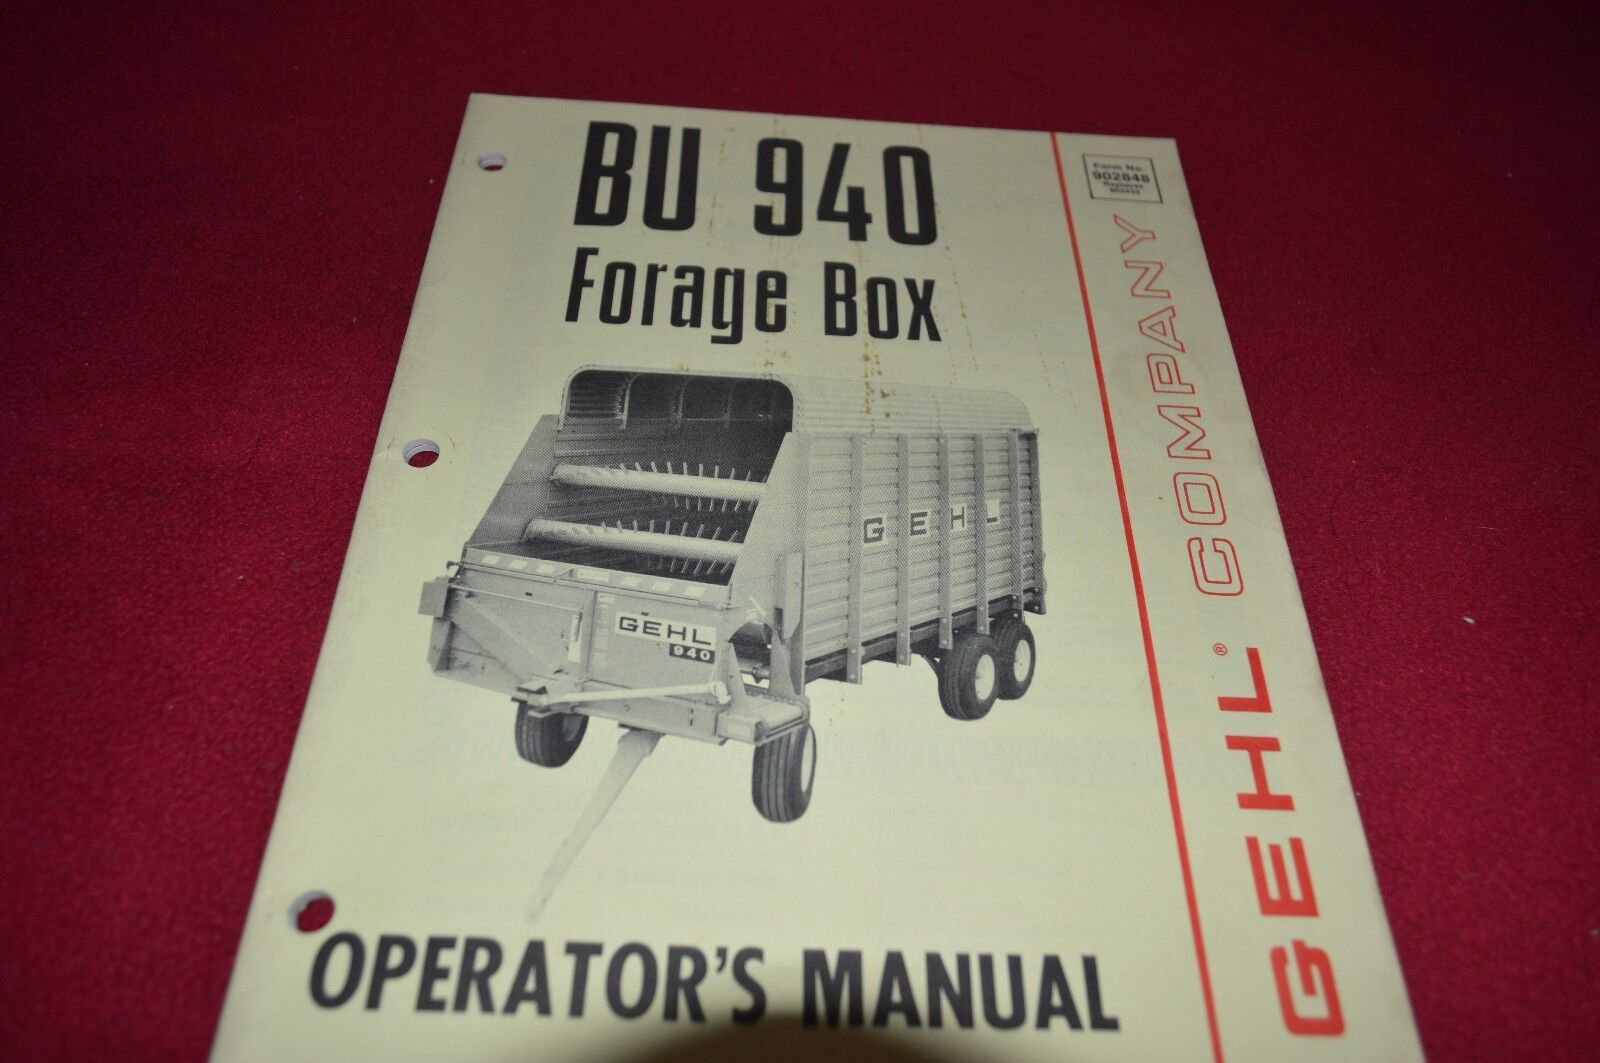 Gehl BU 940 Forage Box Wagon Operator's Manual BVPA 1 of 1Only 1 available  ...